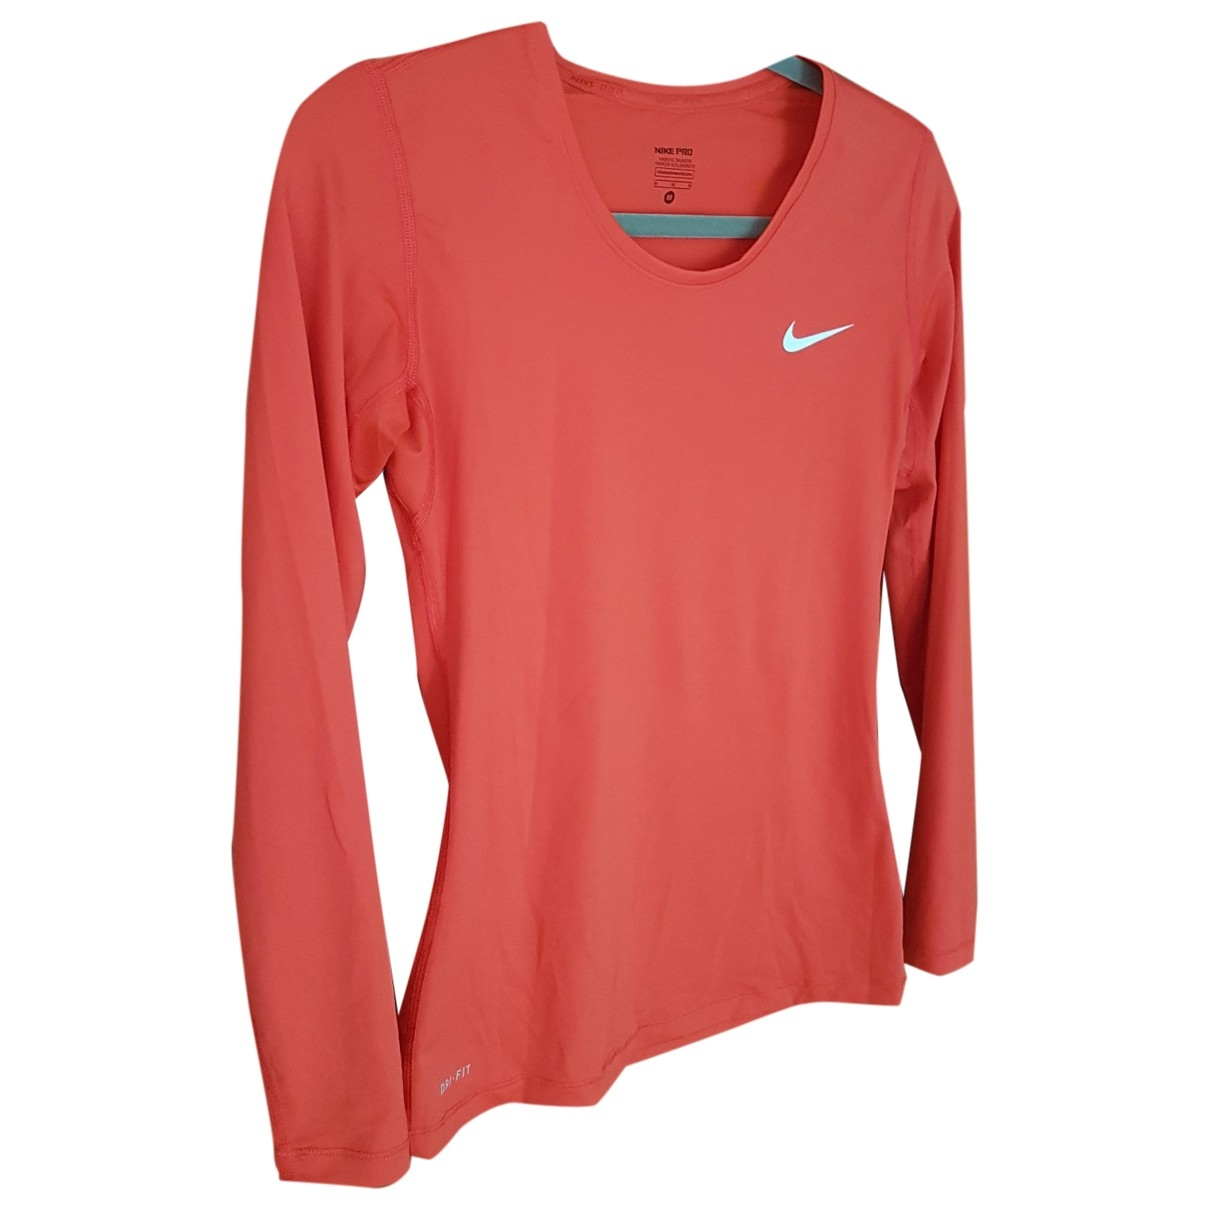 Nike \N Red  top for Women 38 FR